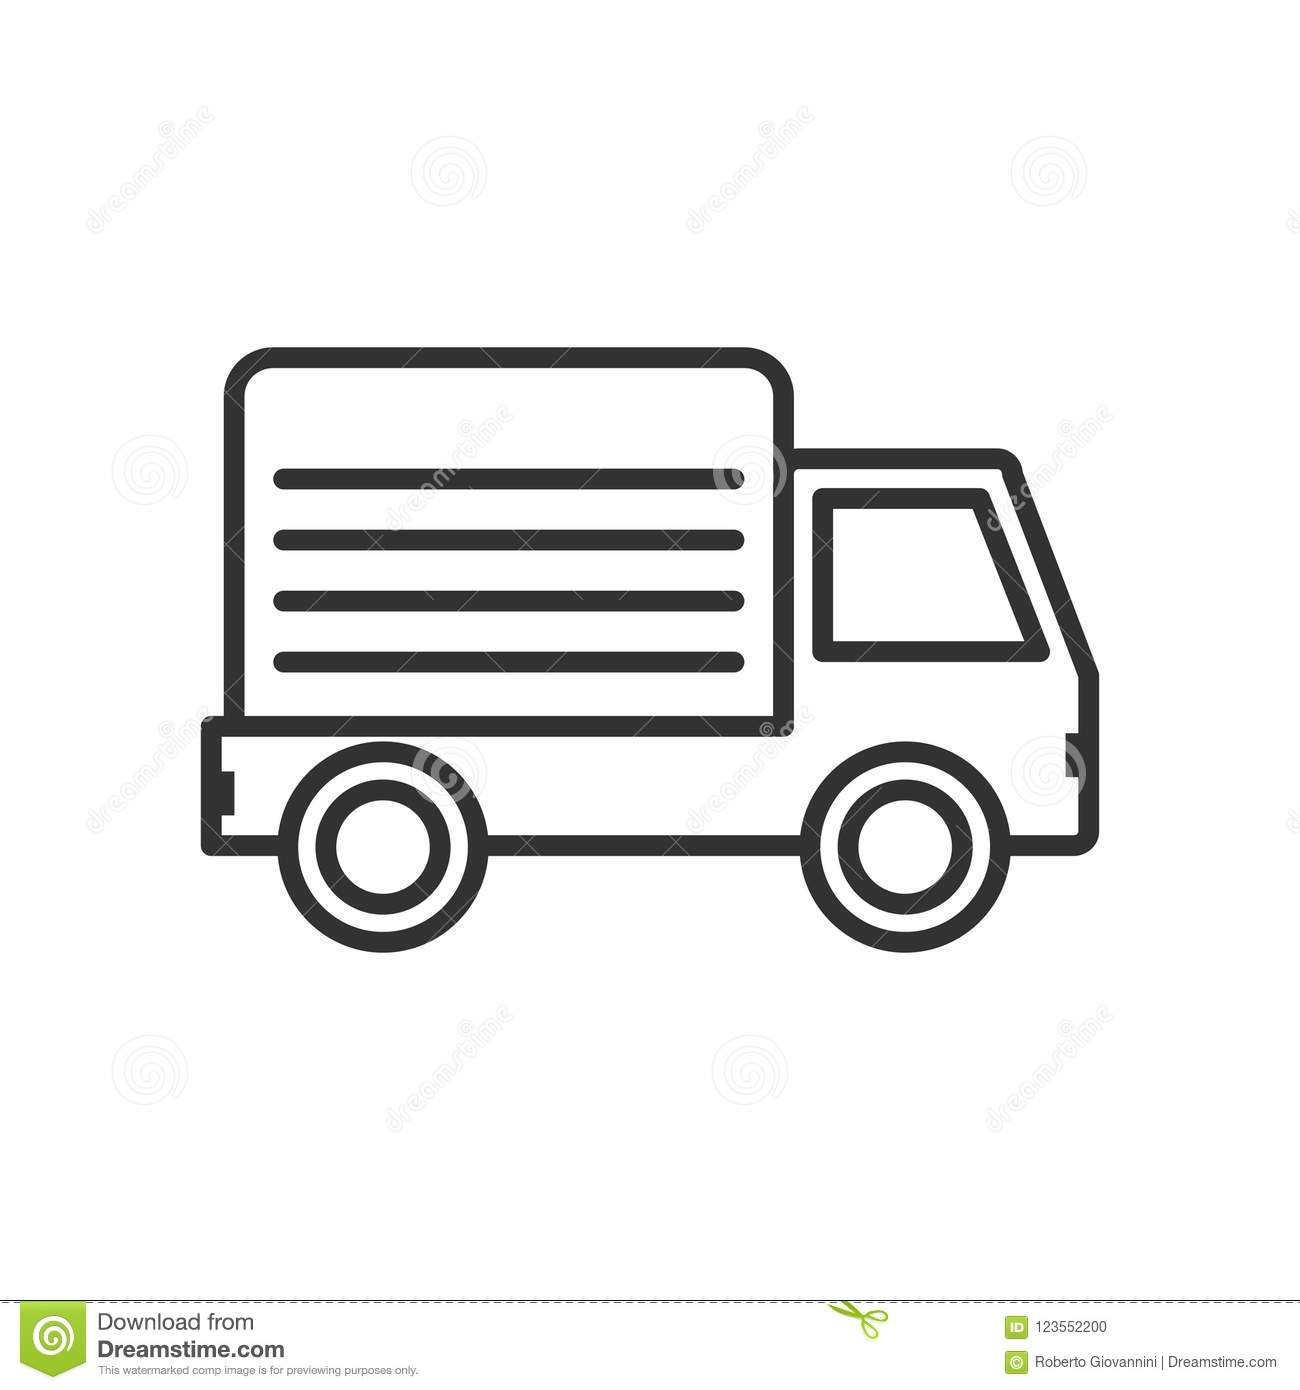 Delivery Van Outline Flat Icon on White